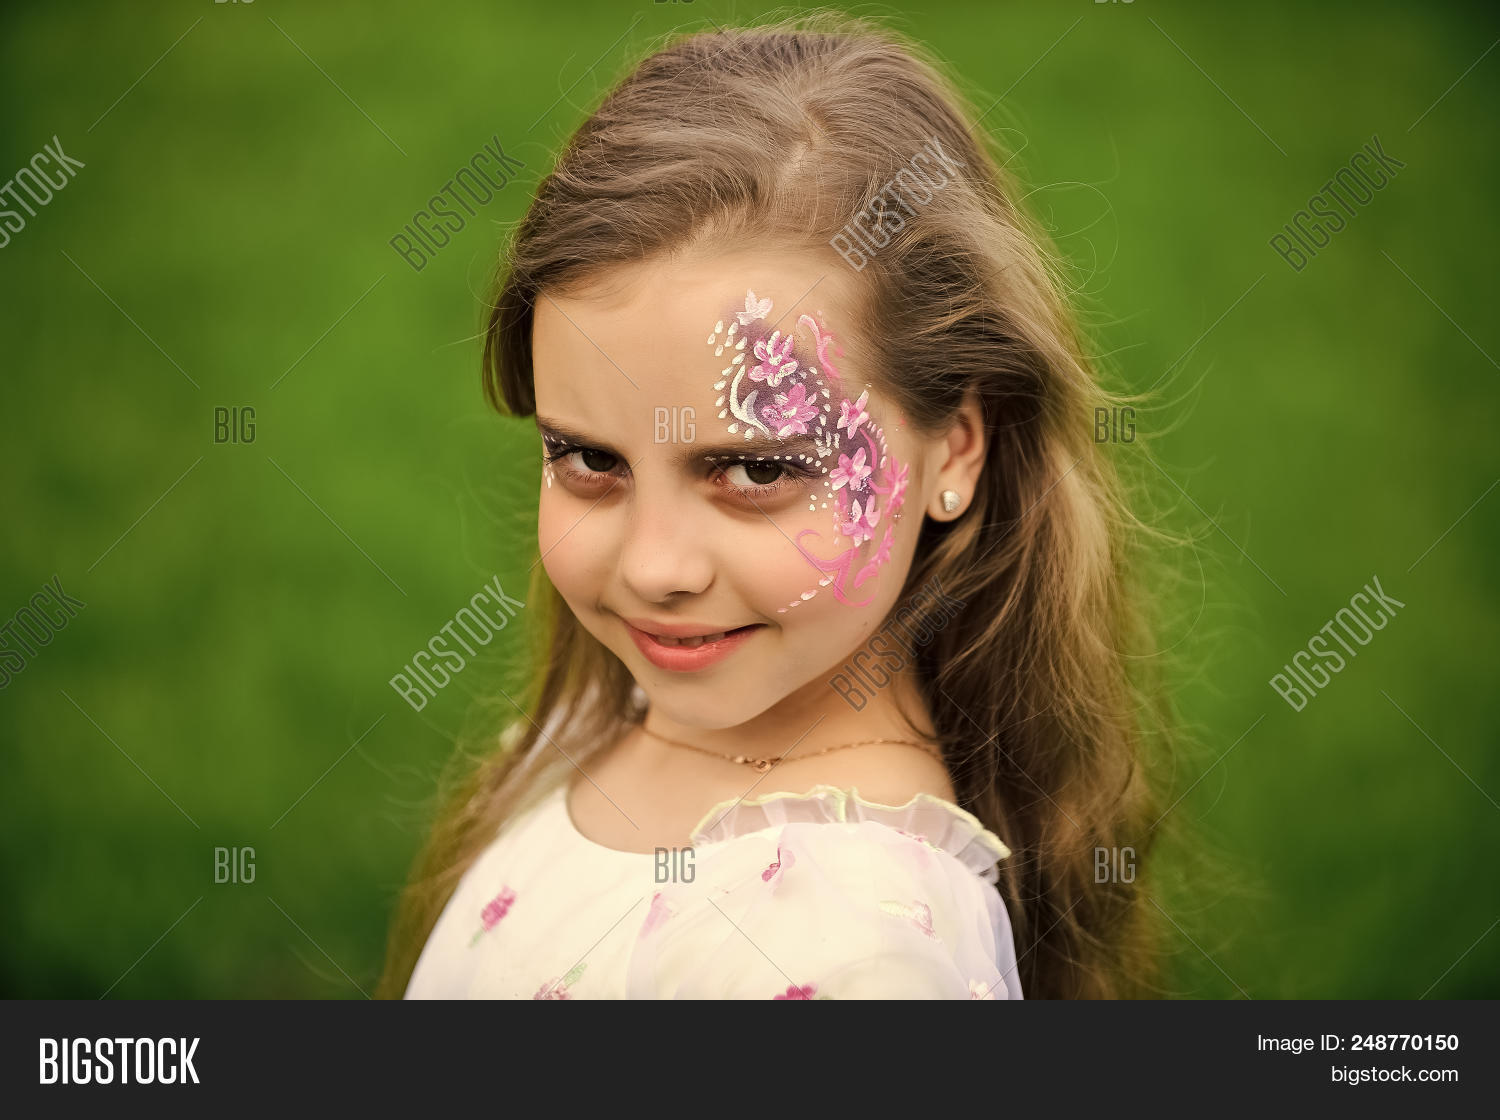 Children S Body Art Image Photo Free Trial Bigstock